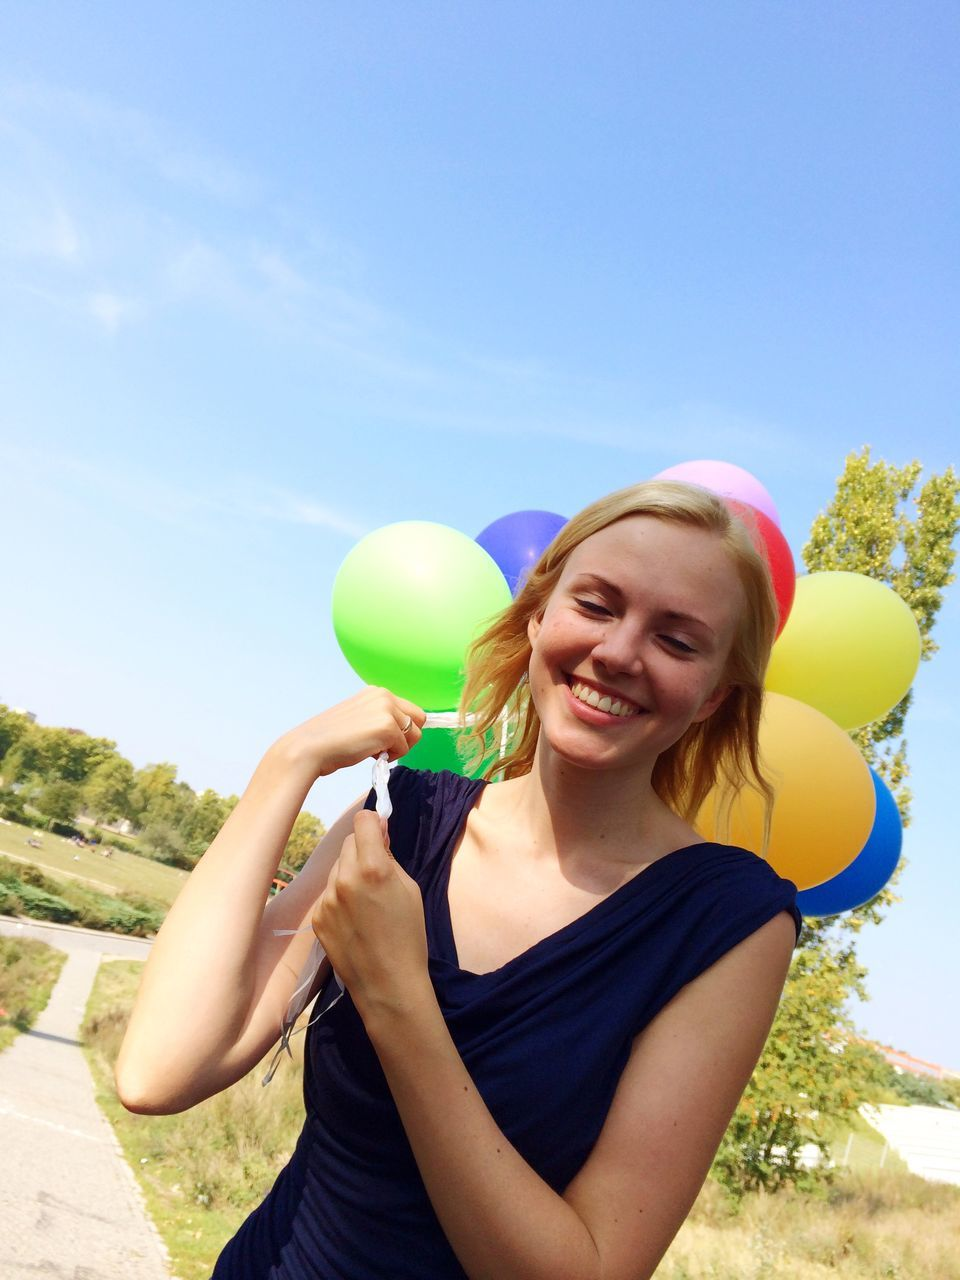 Cheerful Woman With Balloons Standing At Park Against Blue Sky